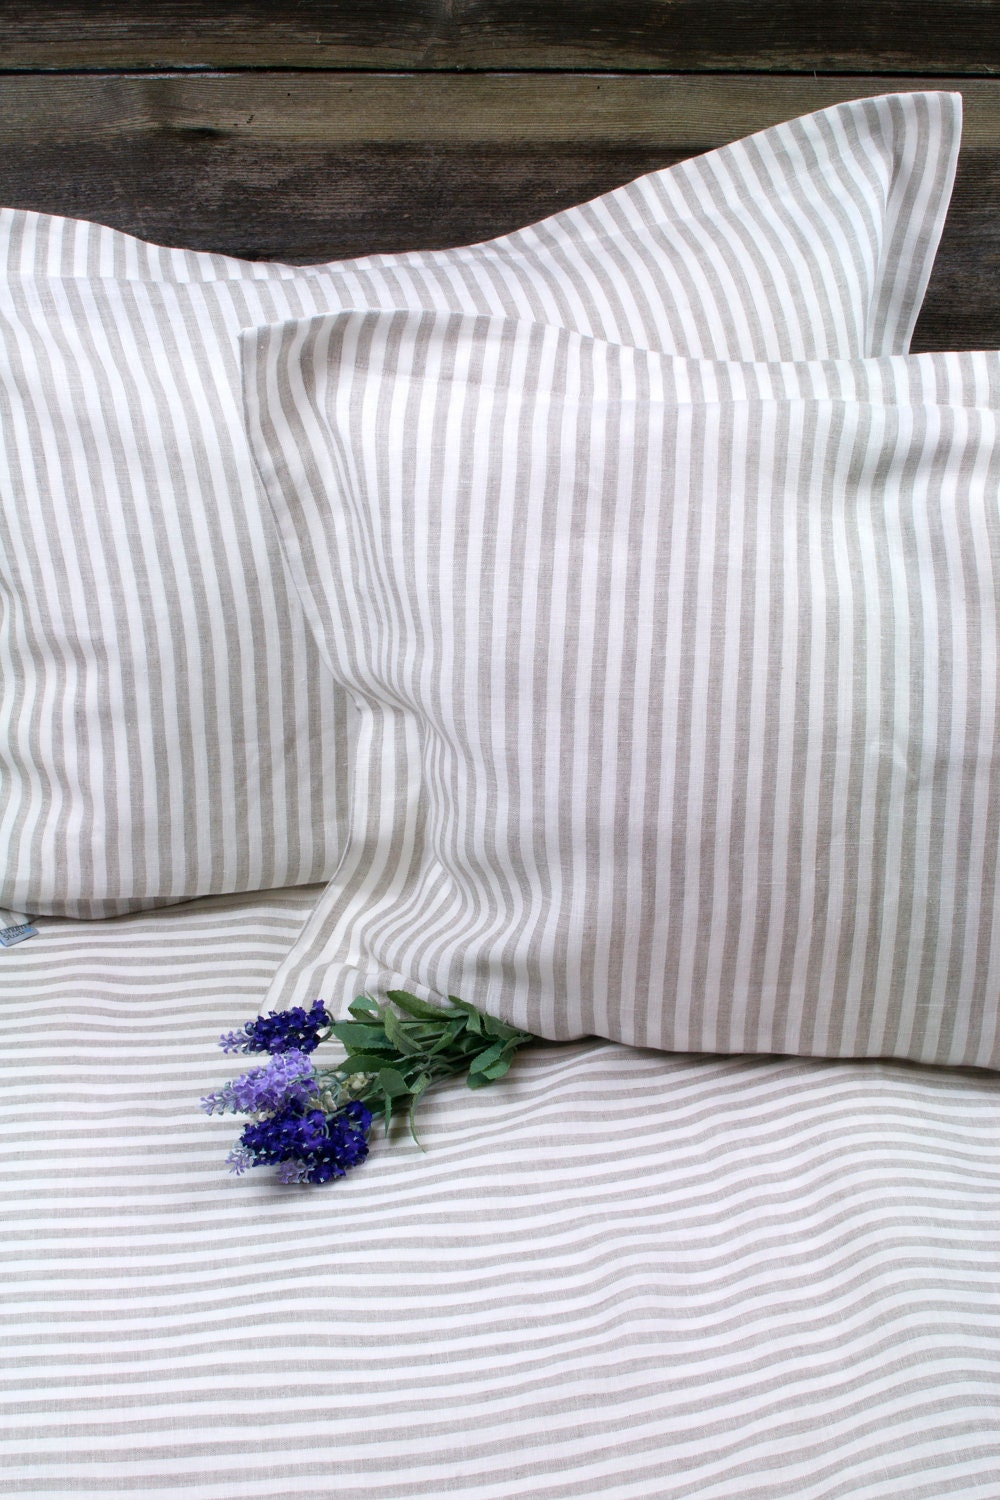 Pure Linen Duvet Cover, Greenish Blue % Linen Flax Bedding, raw, natural, organic, wrinkled linen duvet covers. Singe, twin, double, queen, king Light greenish blue % linen duvet cover with concealed buttons at the bottom. Made from lightweight, densely woven, strong highest.